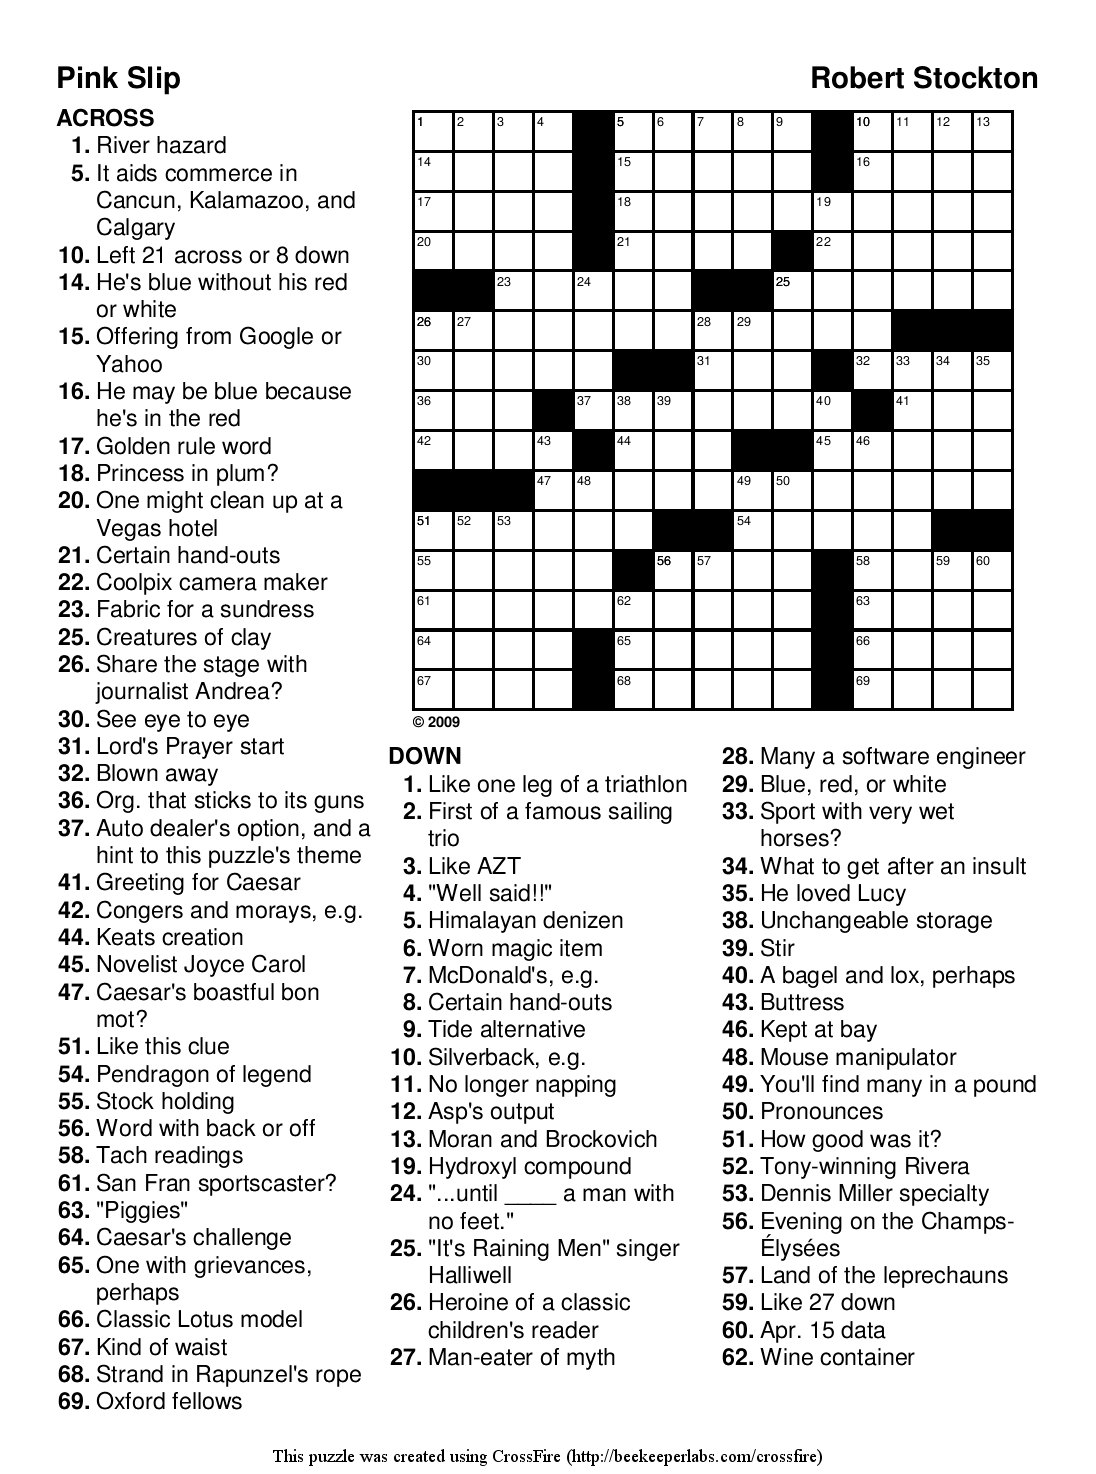 Printable Puzzles For Adults | Easy Word Puzzles Printable Festivals - Printable Puzzles For Adults Free